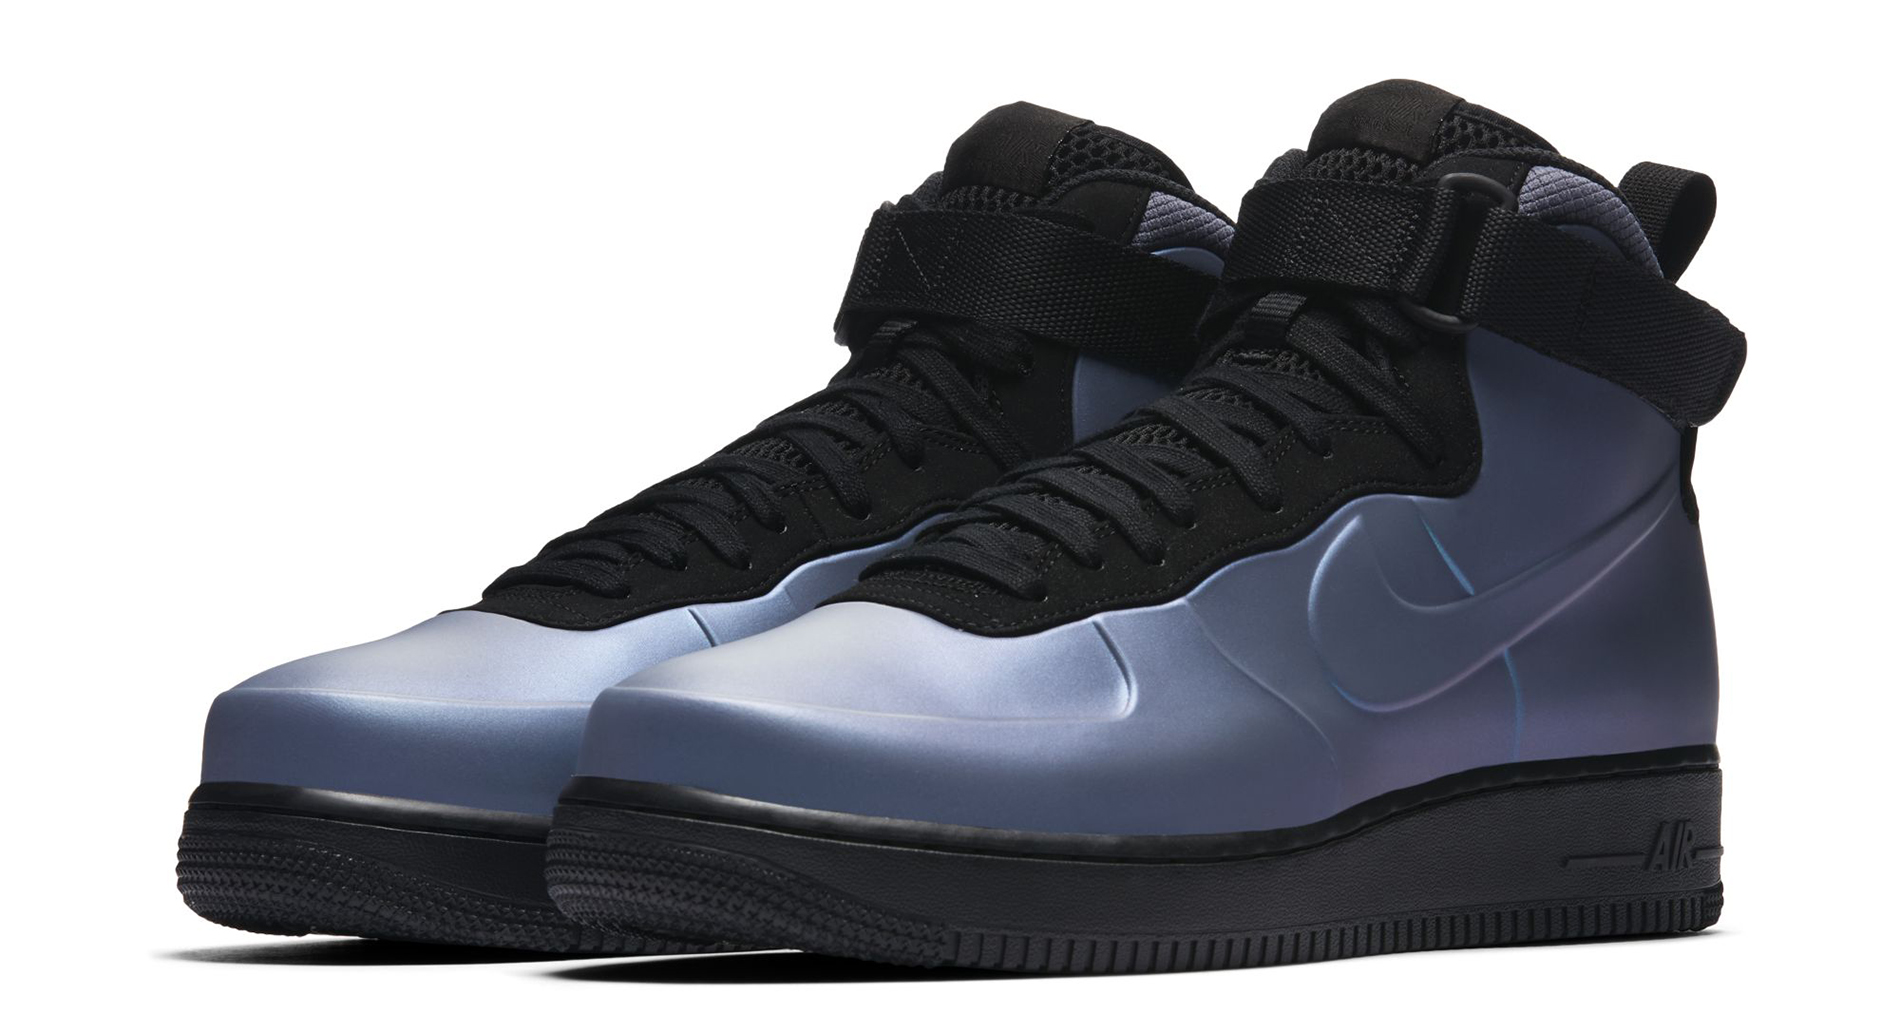 nike air force 1 foamposite returns in 2018 nice kicks. Black Bedroom Furniture Sets. Home Design Ideas